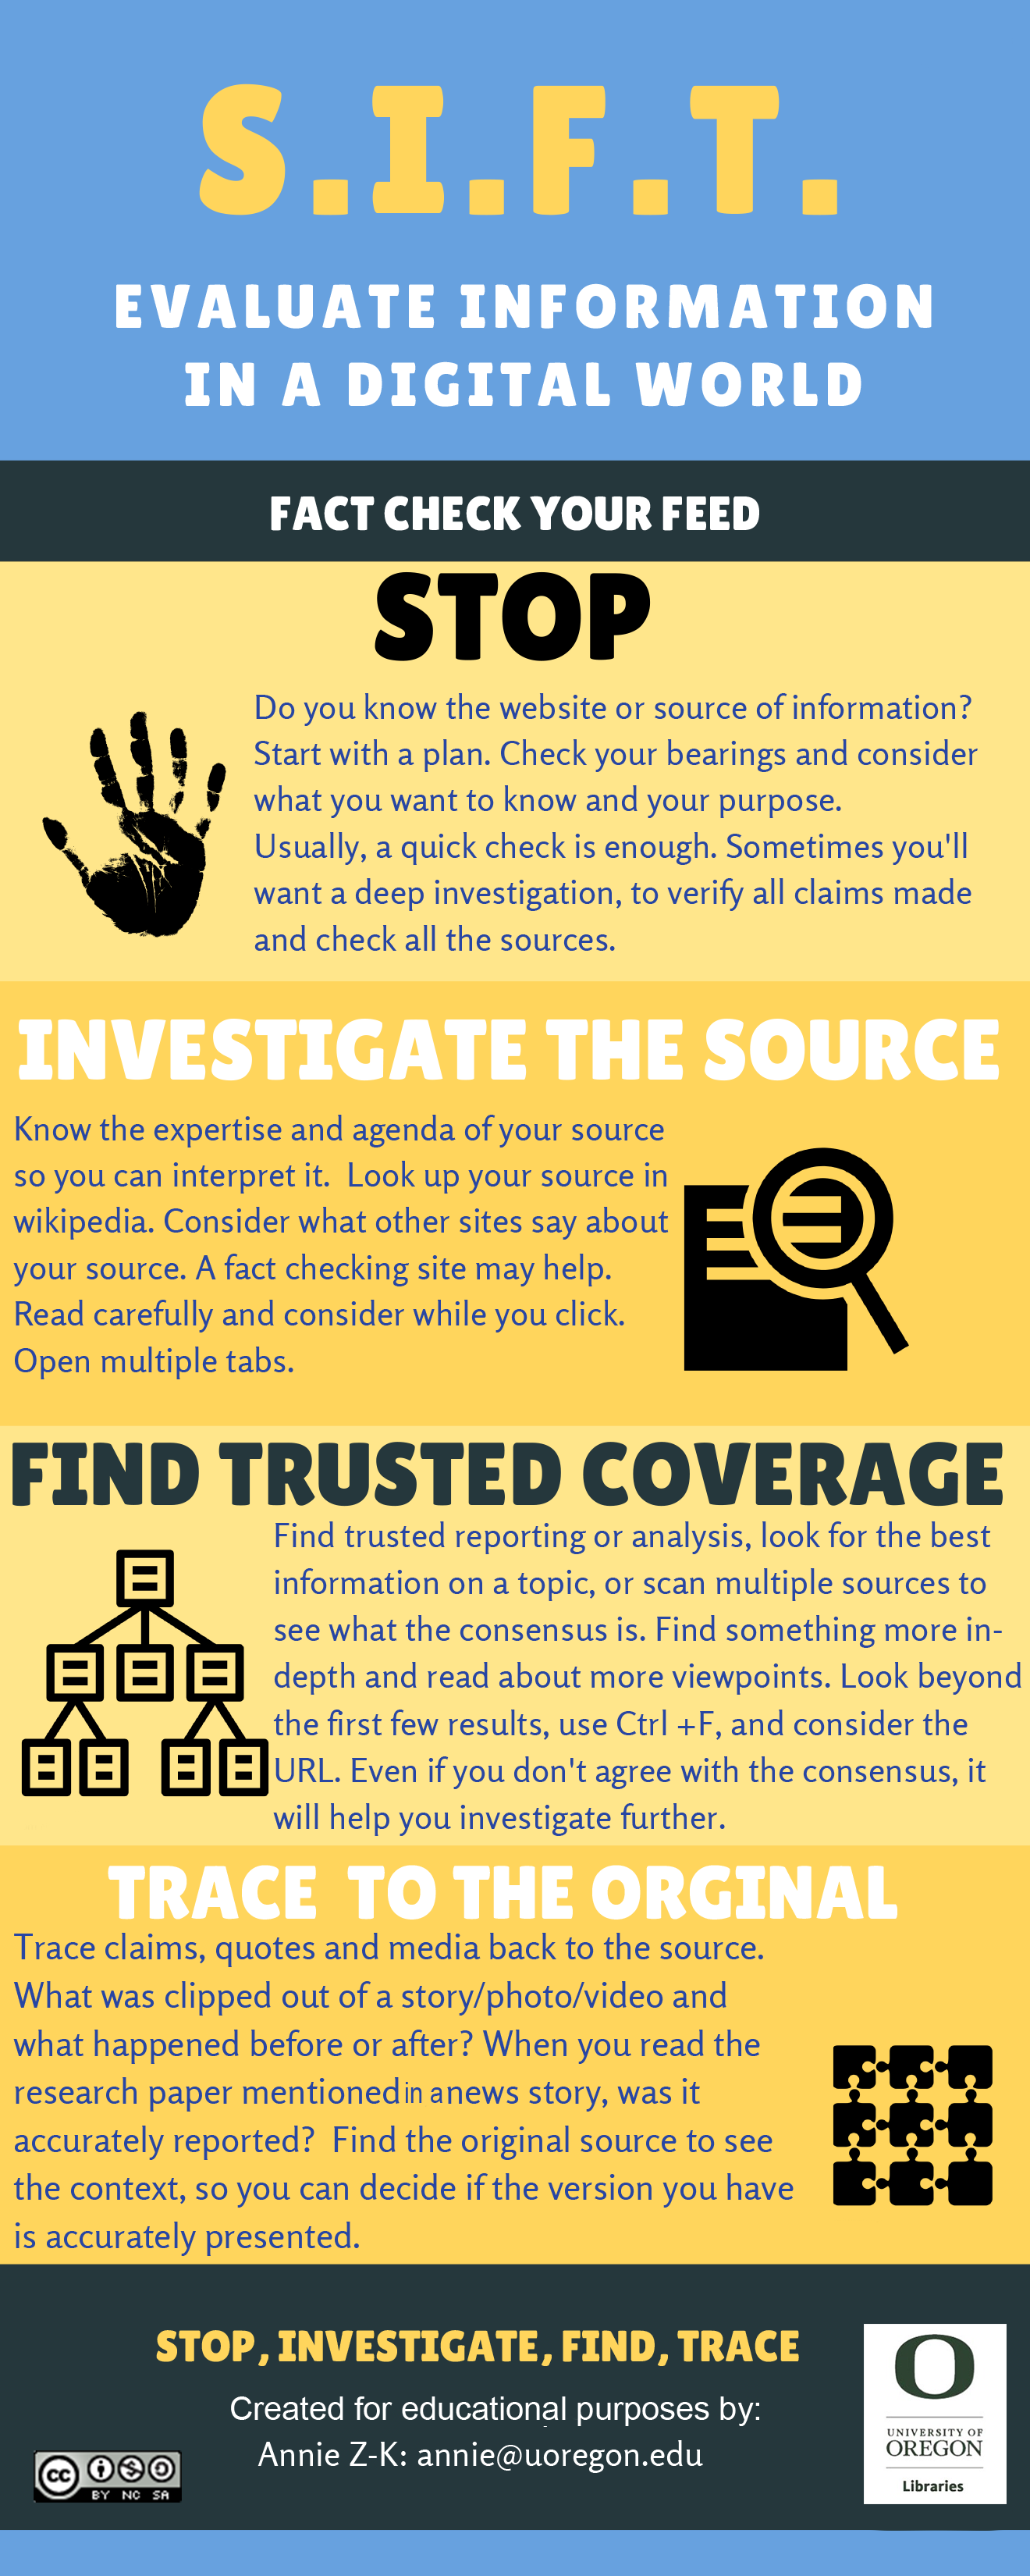 S.I.F.T: Evaluate Information in a Digital World Fact Check your Feed Stop Do you know the website or source of information? Start with a plan. Check your bearings and consider what you want to know and your purpose. Usually, a quick check is enough. Sometimes you'll want a deep investigation to verify all claims made and check all the sources. Investigate the Source Know the expertise and agenda of your source so you can interpret it. Look up your source in Wikipedia. Consider what other sites say about your source. A fact checking site may help. Read carefully and consider while you click. Open multiple tabs. Find trusted coverage Find trusted reporting or analysis, look for the best information on a topic, or scan multiple sources to see what consensus is. Find something more in-depth and read about more viewpoints. Look beyond the first few results, use Ctrl + F, and consider the URL. Even if you don't agree with the consensus, it will help you investigate further. Trace claims, quotes, and media back to the original context Trace claims, quotes and media back to the source. What was clipped out of a story/photo/video and what happened before or after? When you read the research paper mentioned in a news story, was it accurately reported? Find the original source to see the context, so you can decide if the version you have is accurately presented. STOP, INVESTIGATE, FIND, TRACE